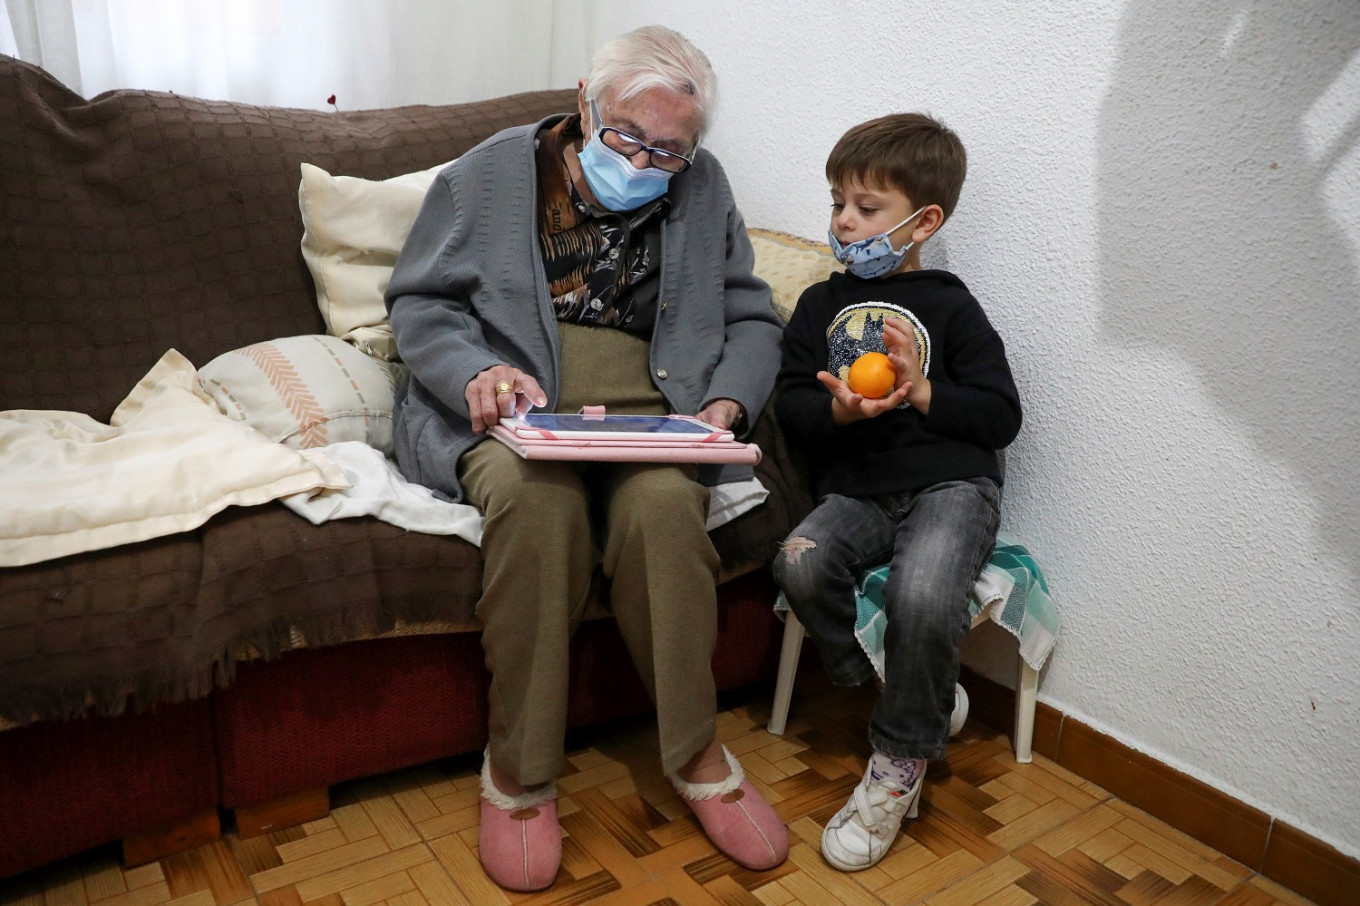 Spanish grandma, 99, gets back to computer games after beating COVID-19